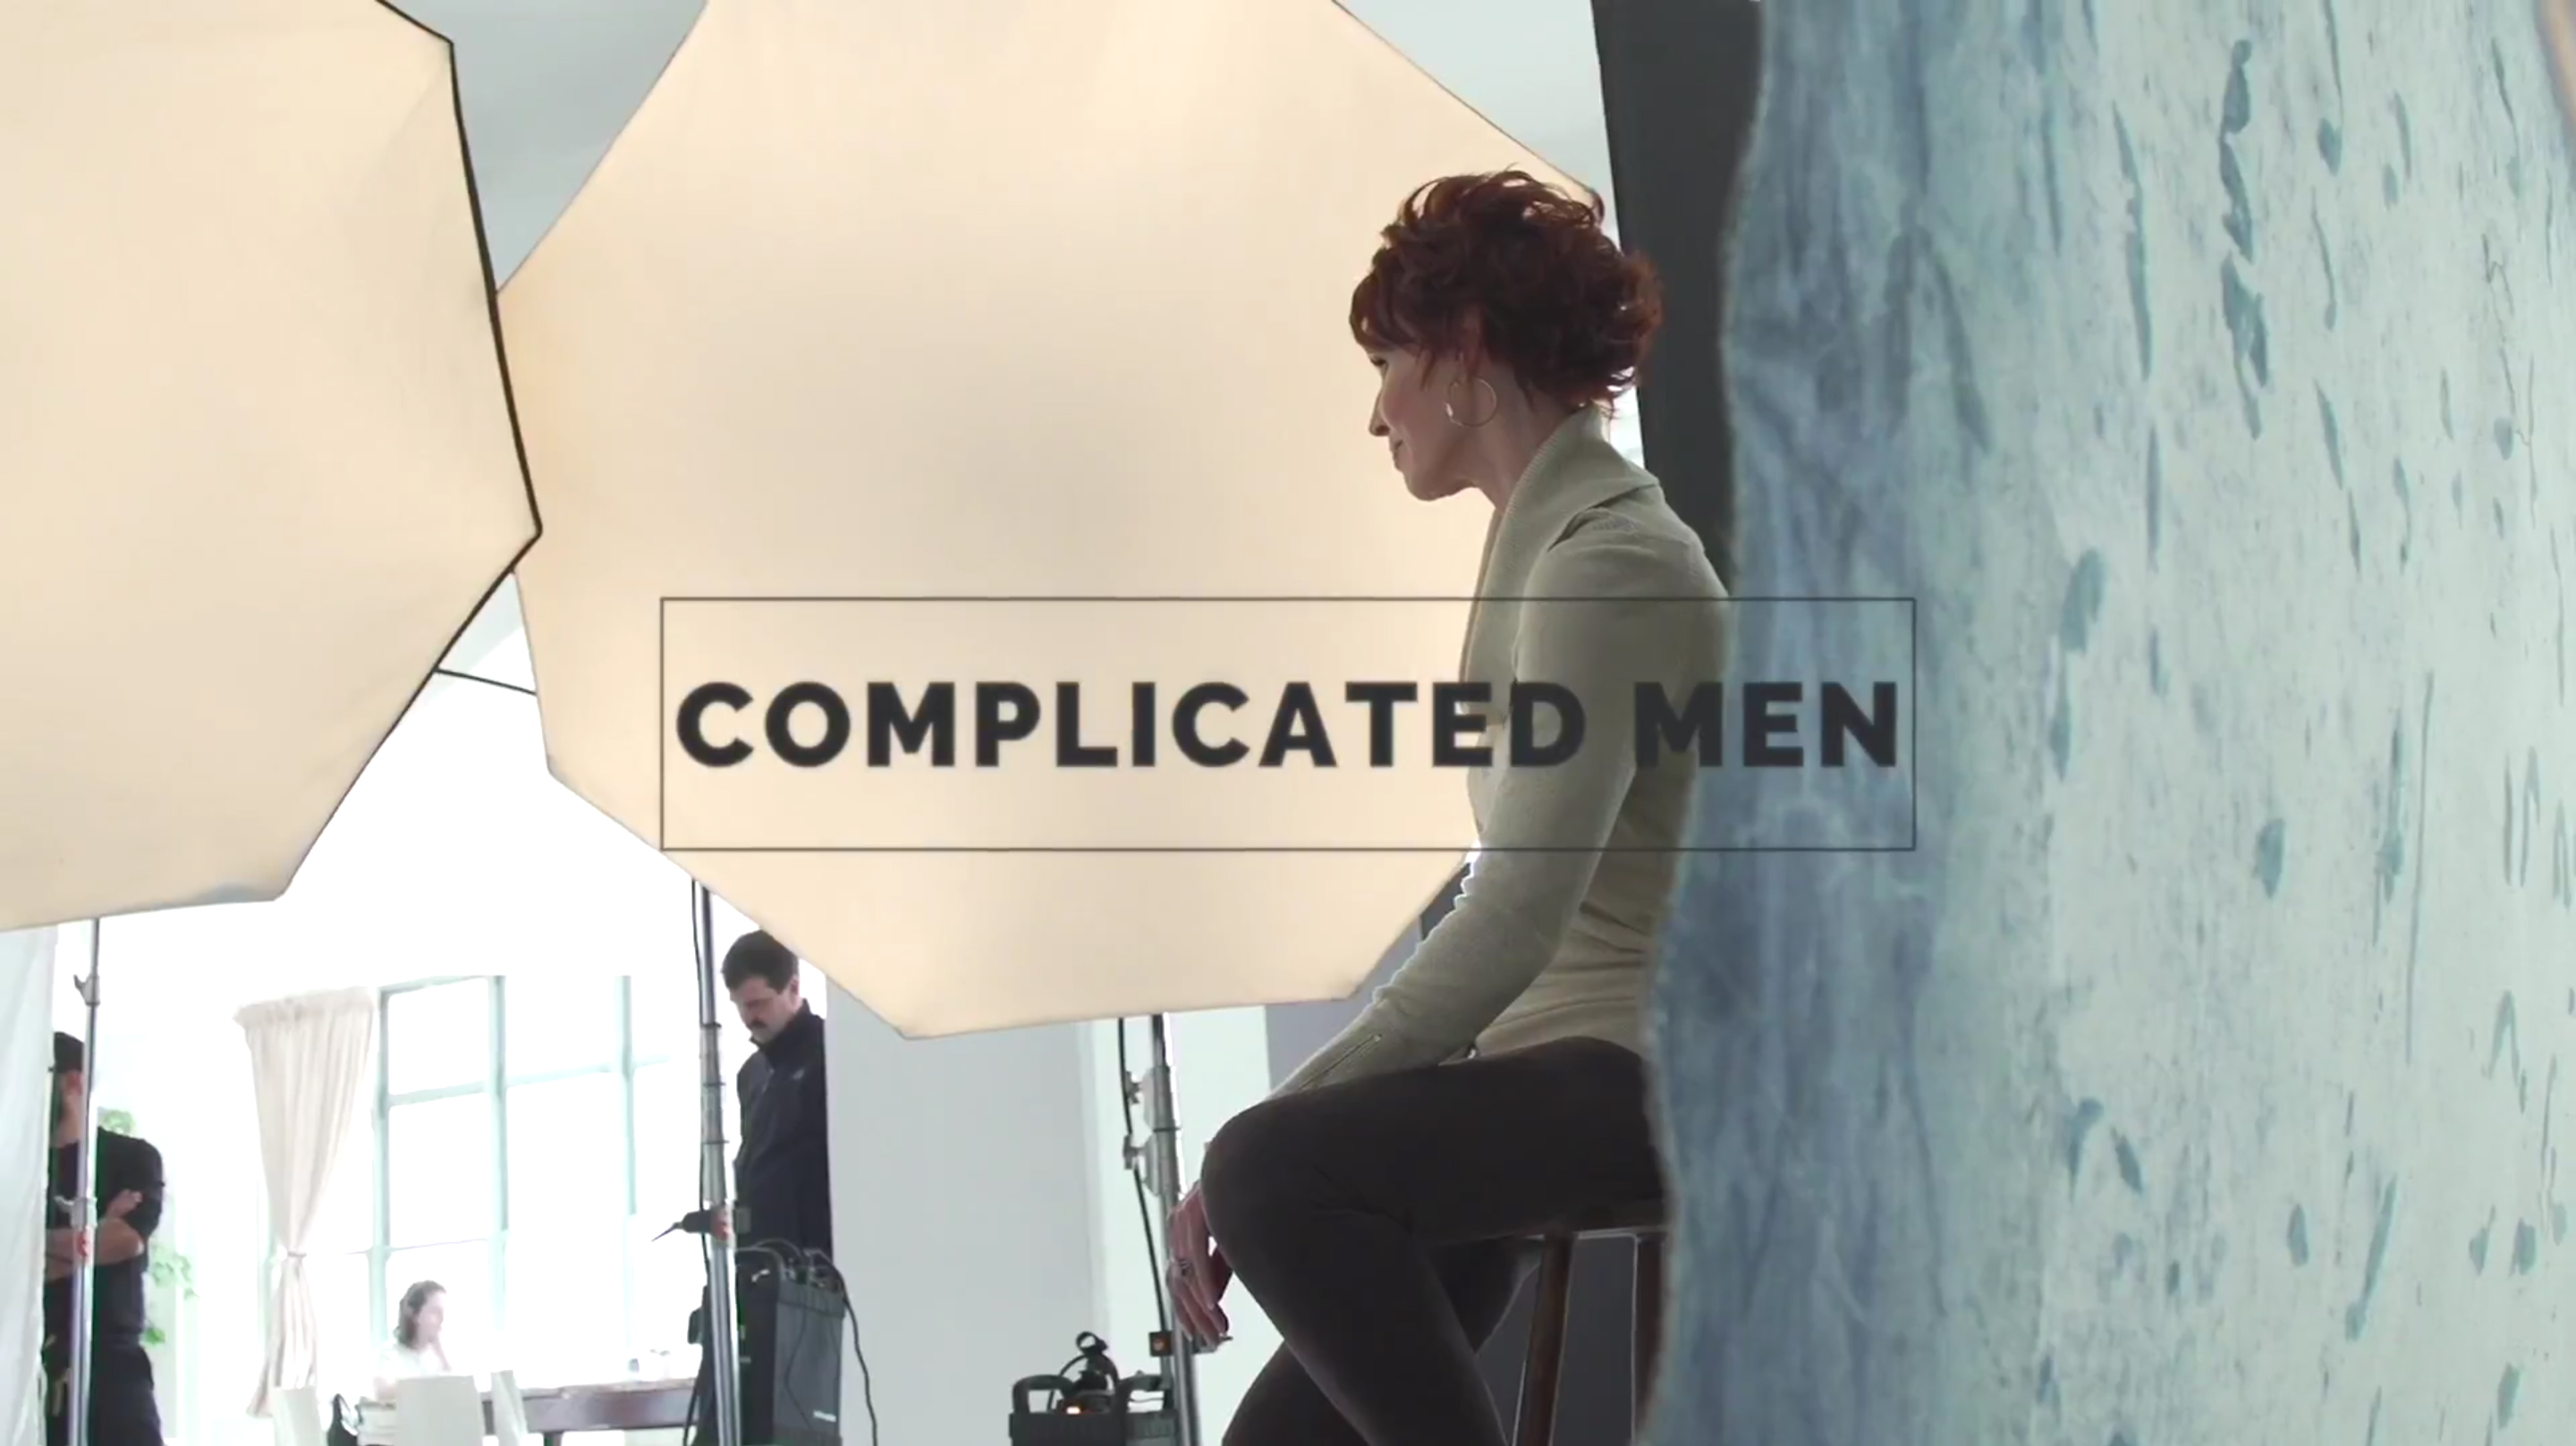 Complicated Men